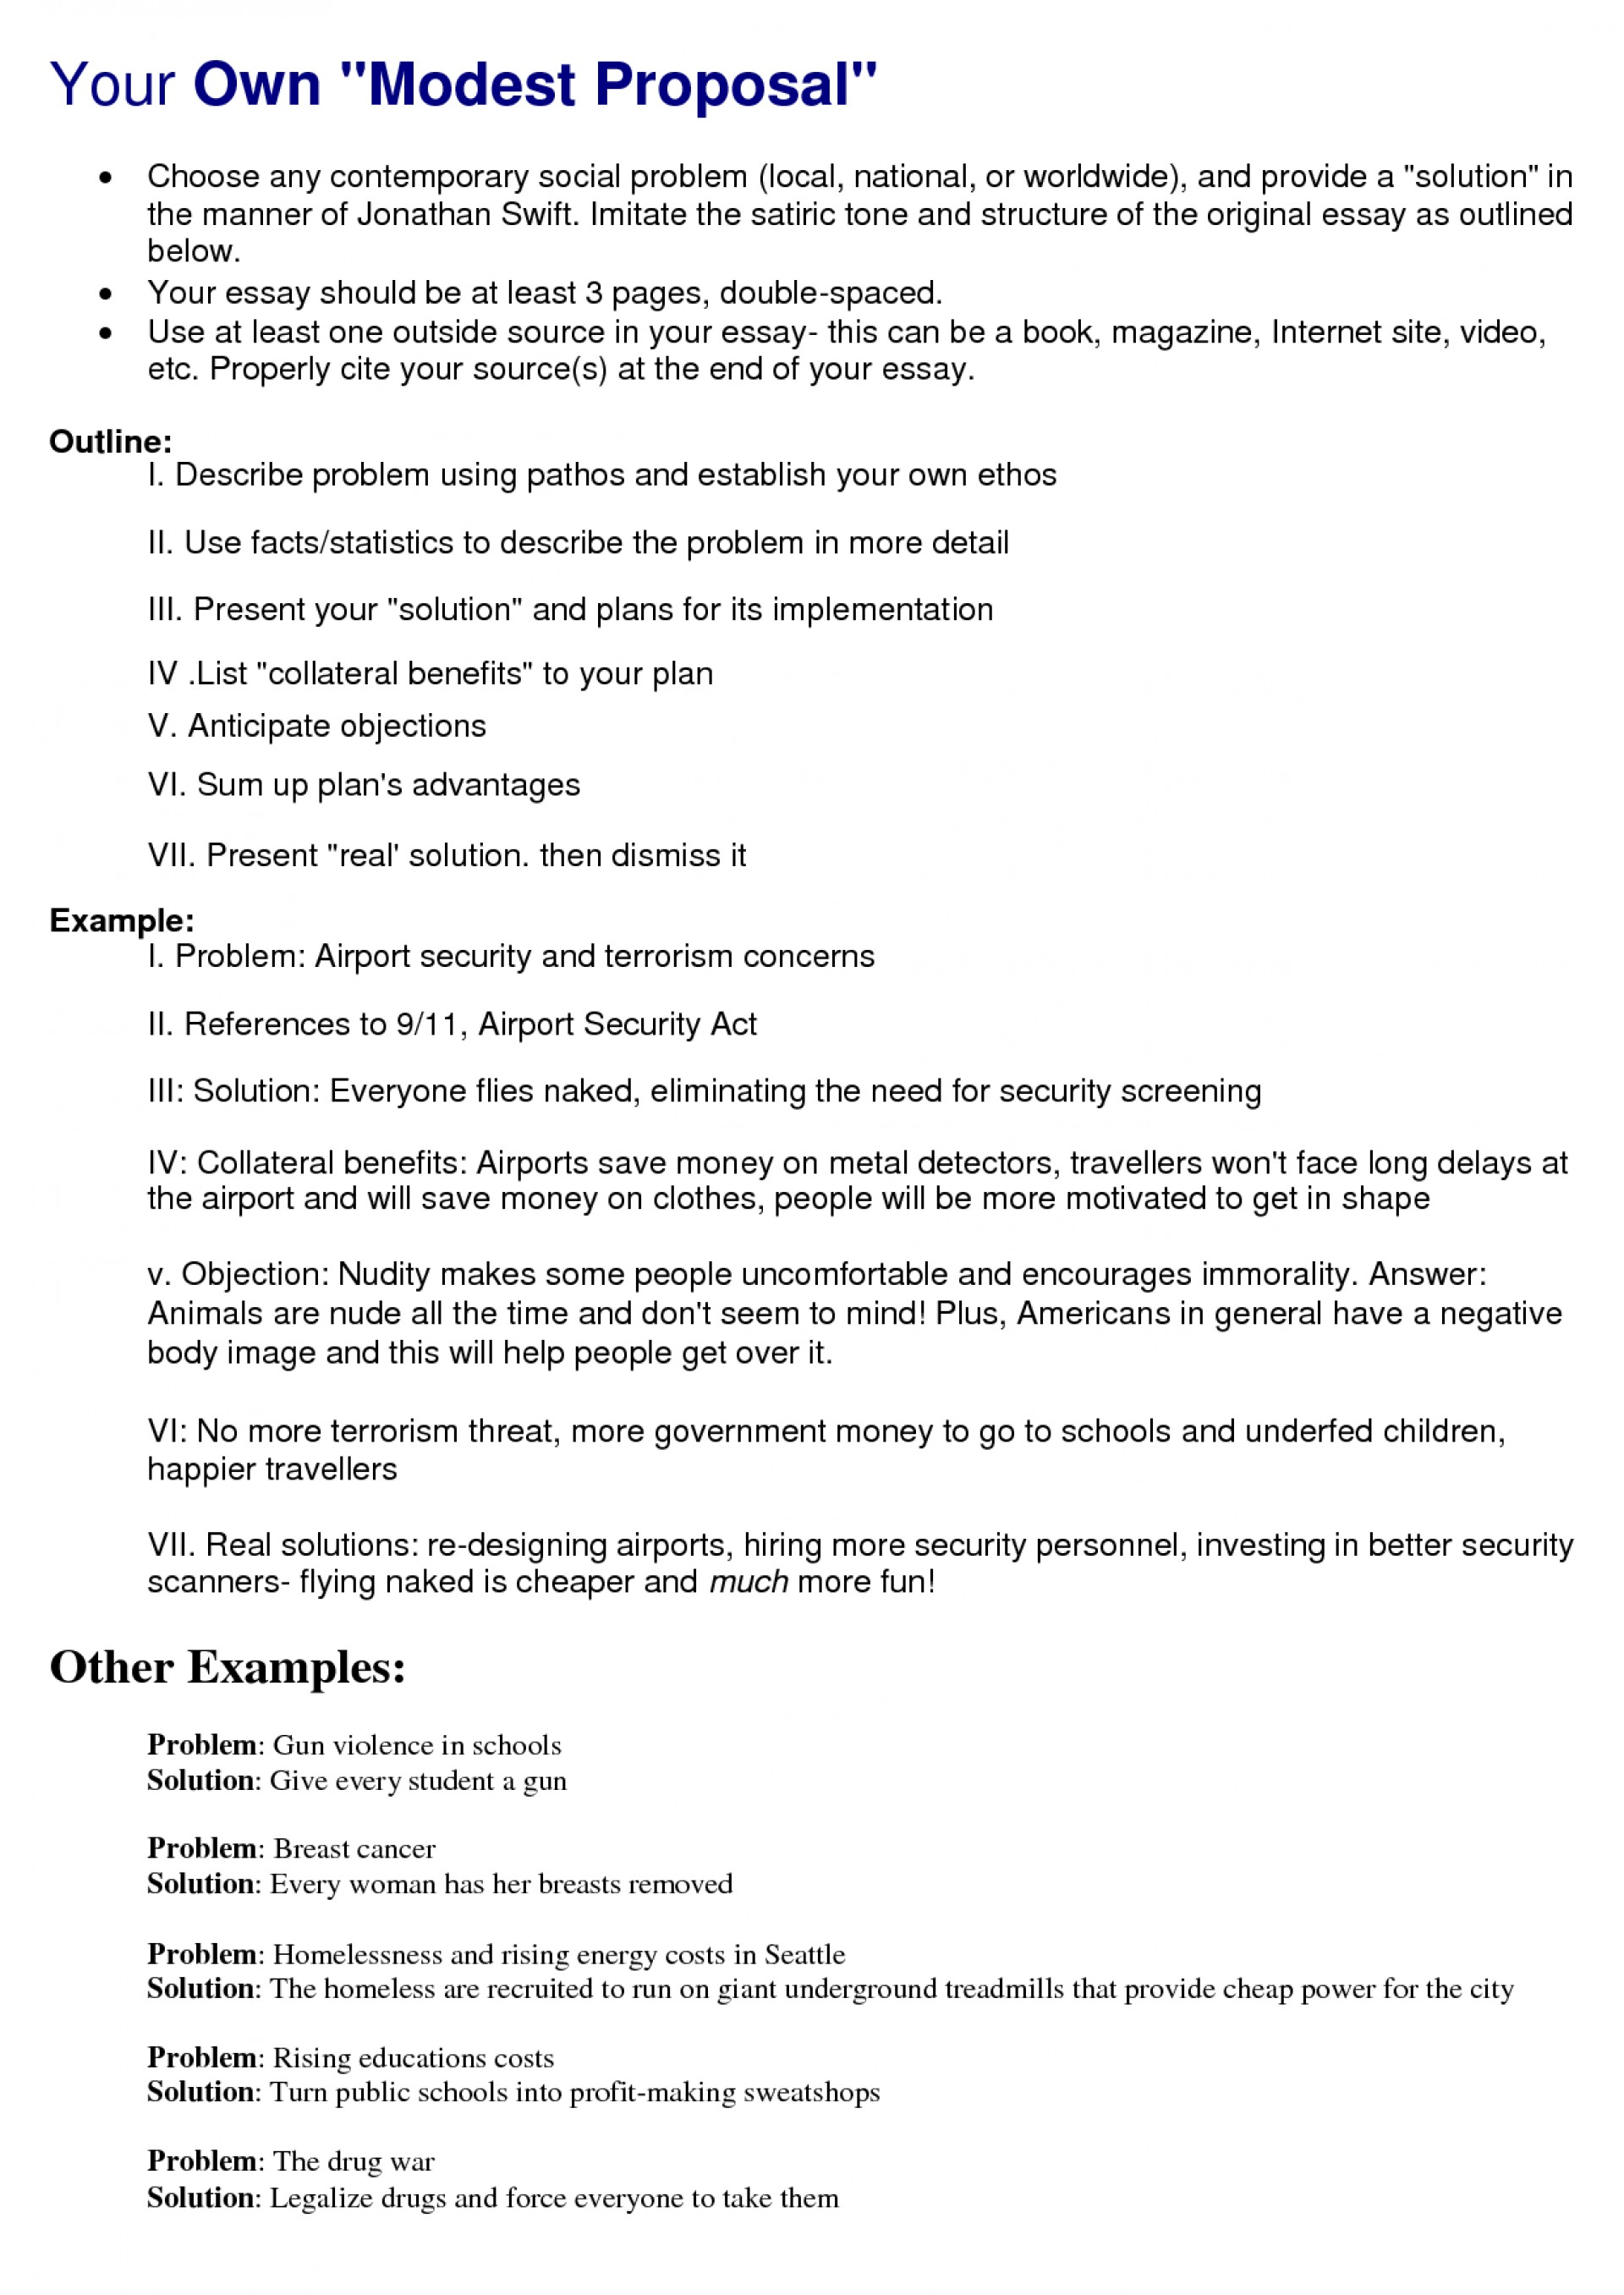 021 What Is Proposal Essay Top A Argument The Purpose Of 1920